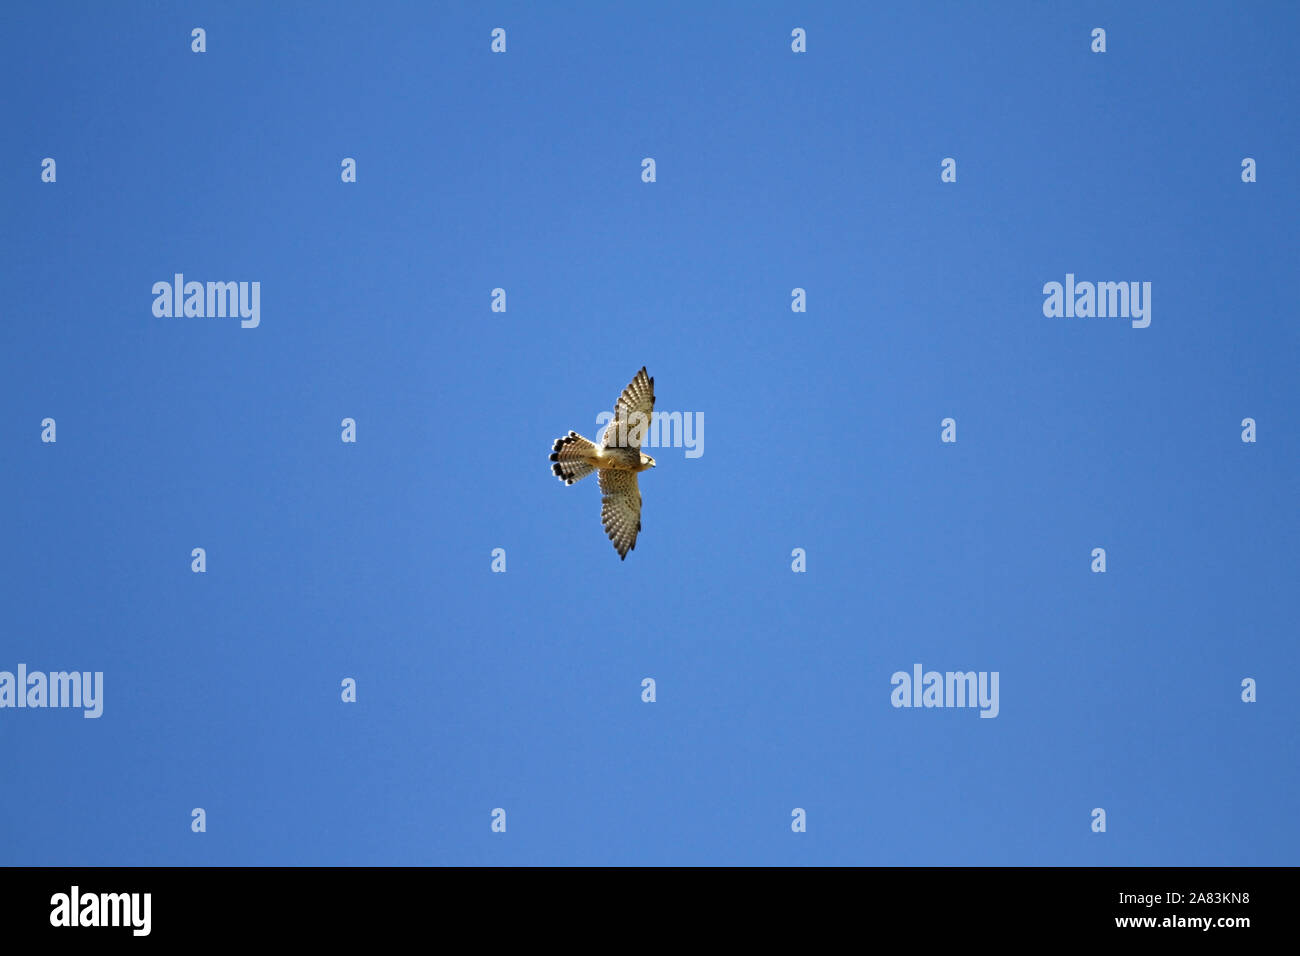 female kestrel Latin name falco tinnunculus with wings outstretched hunting above a field in Le Marche in Italy Stock Photo